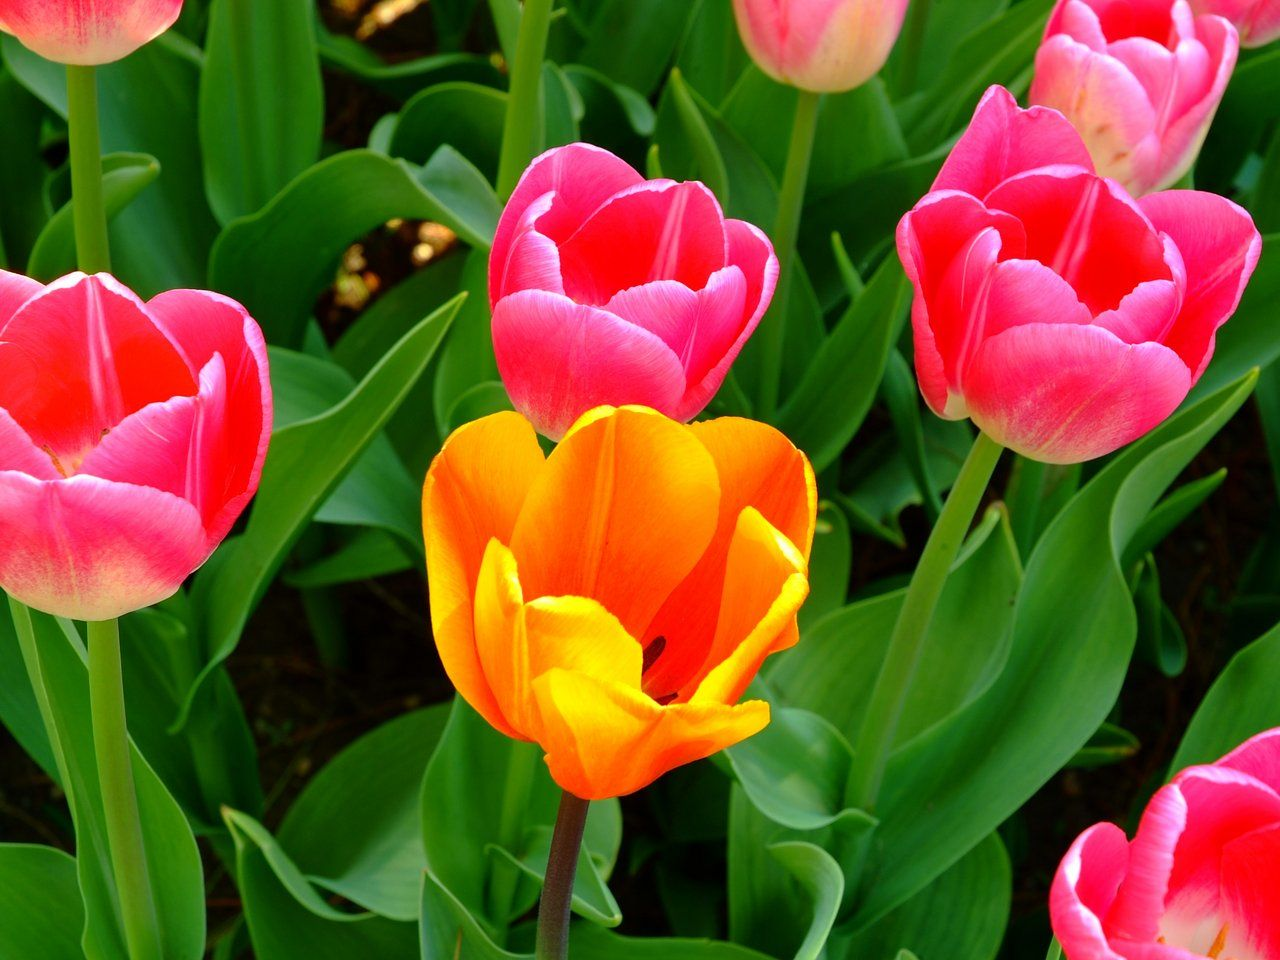 tulips in the spring - photo #18